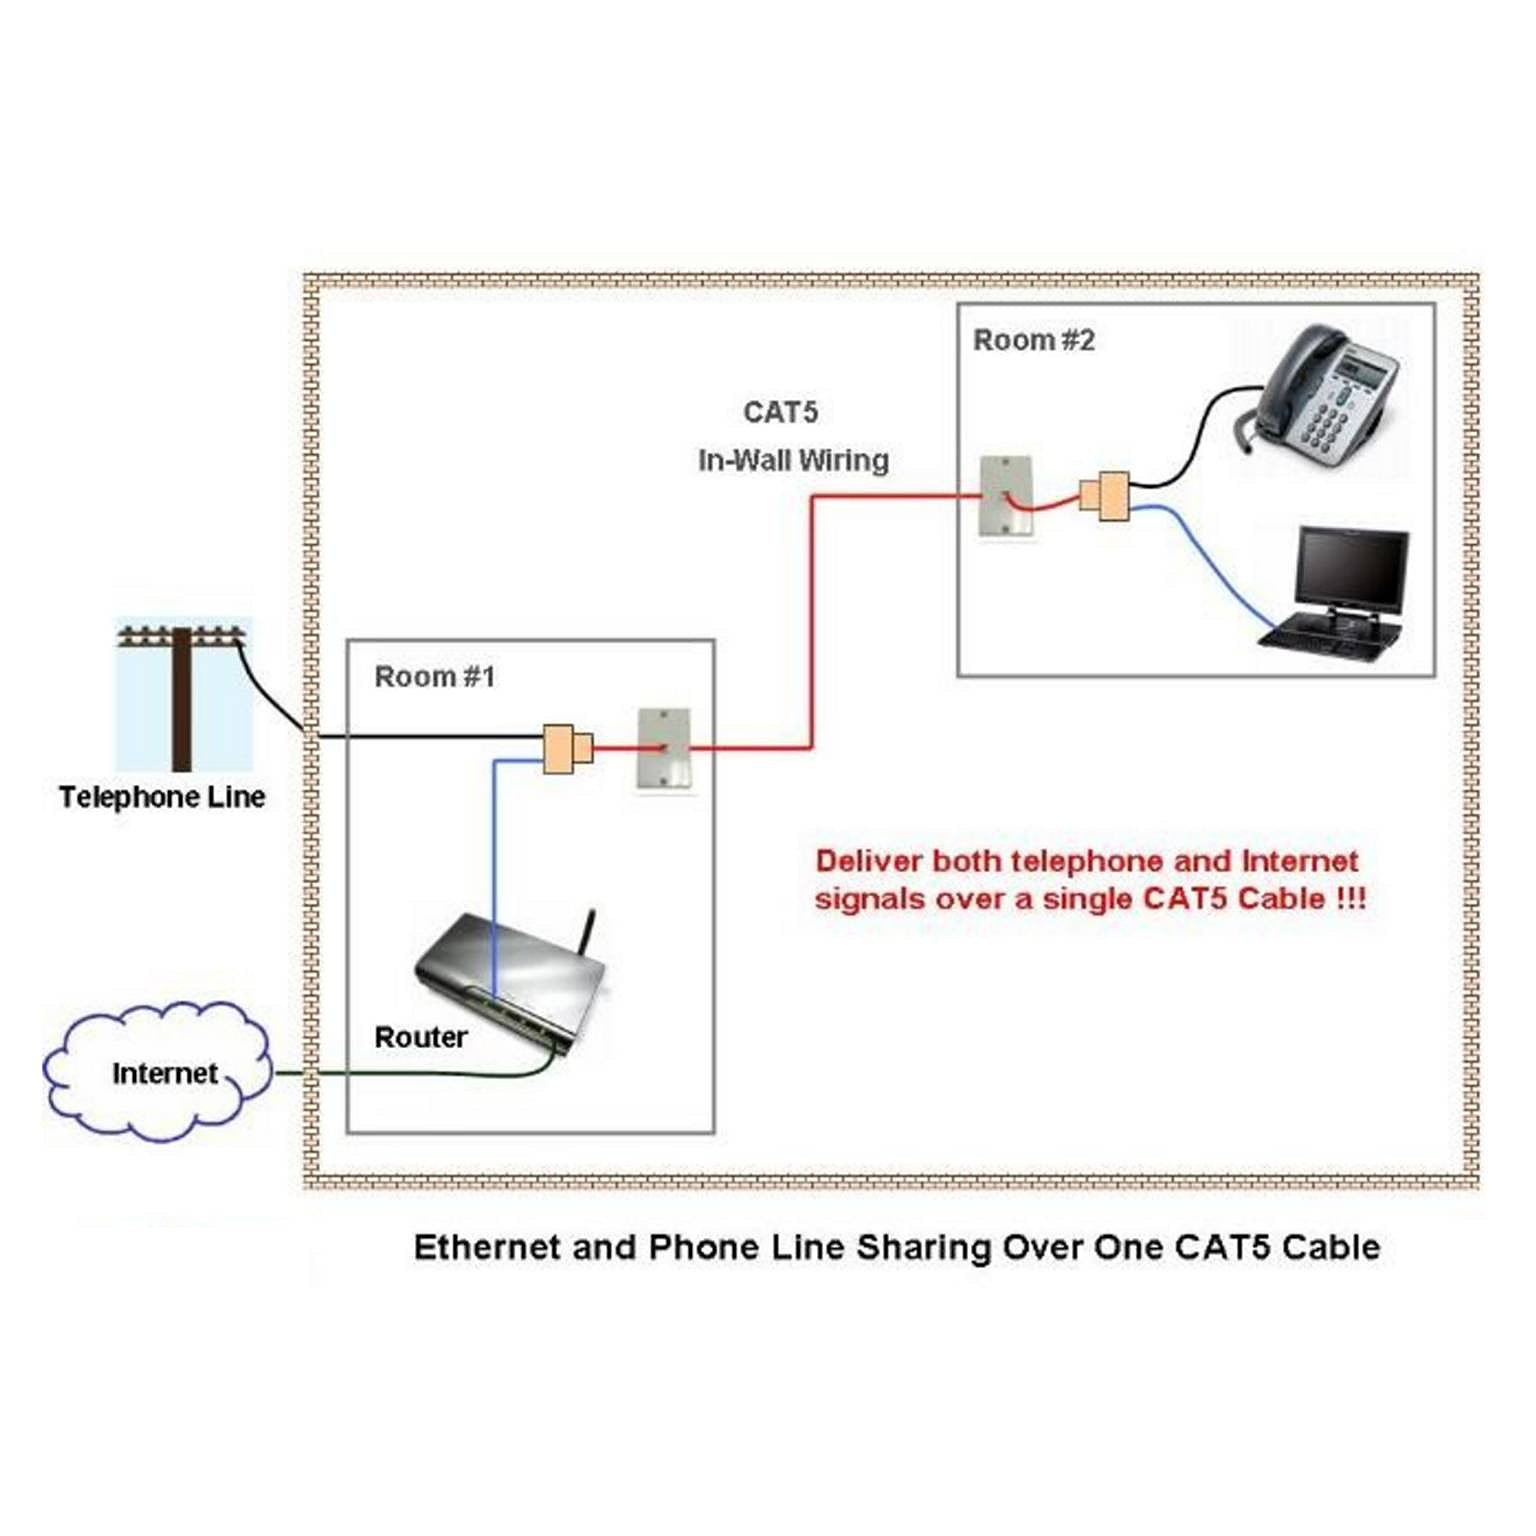 Rj45 Rj11 Splitter Cable Sharing Kit For Ethernet And Phone Lines Line Wiring Load Image Into Gallery Viewer